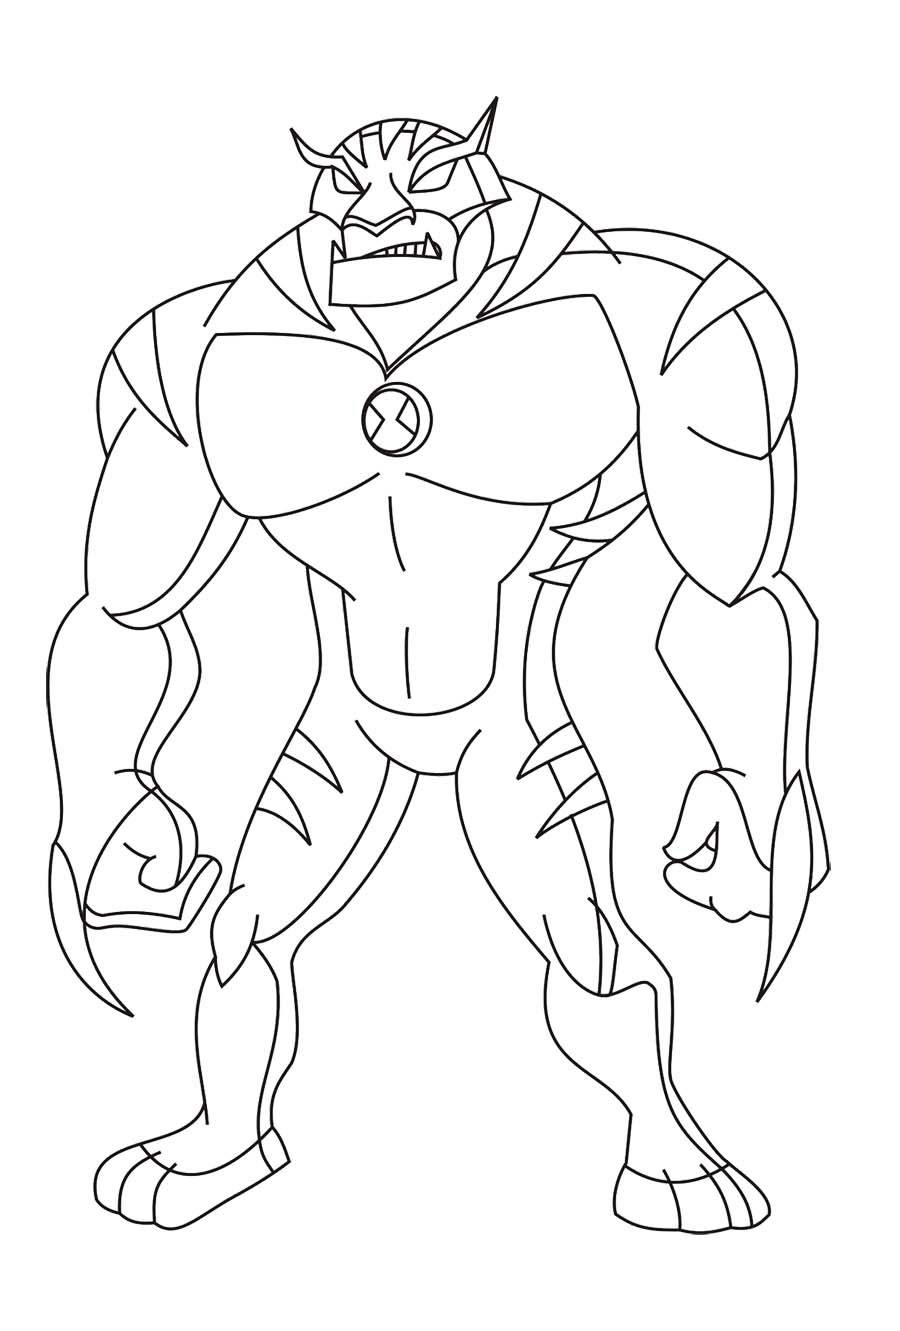 Rath Alien Change Ben Ten Coloring Page | Ben ten room for Brock ...